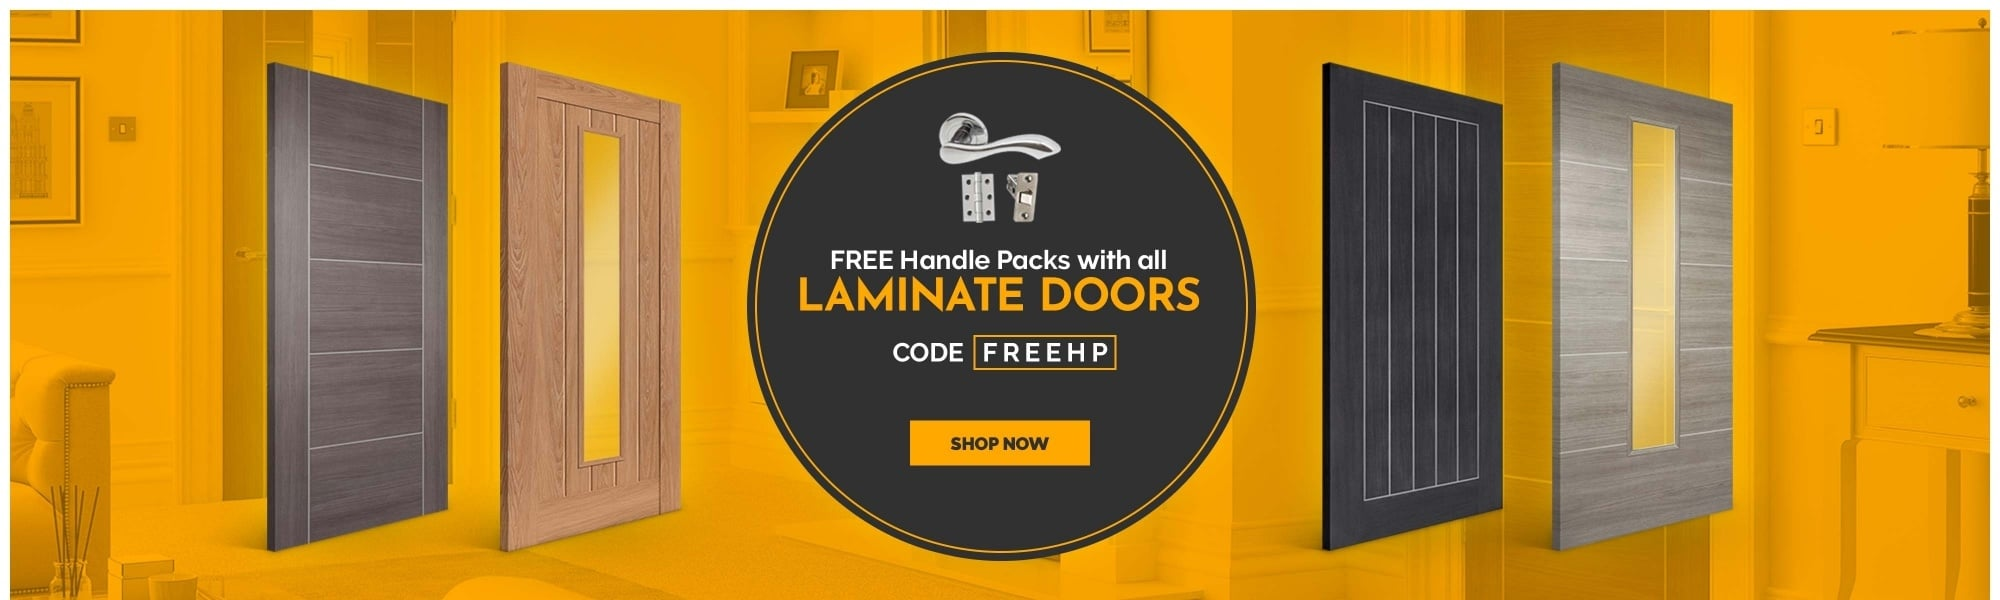 FREE handle packs with all Laminate Doors